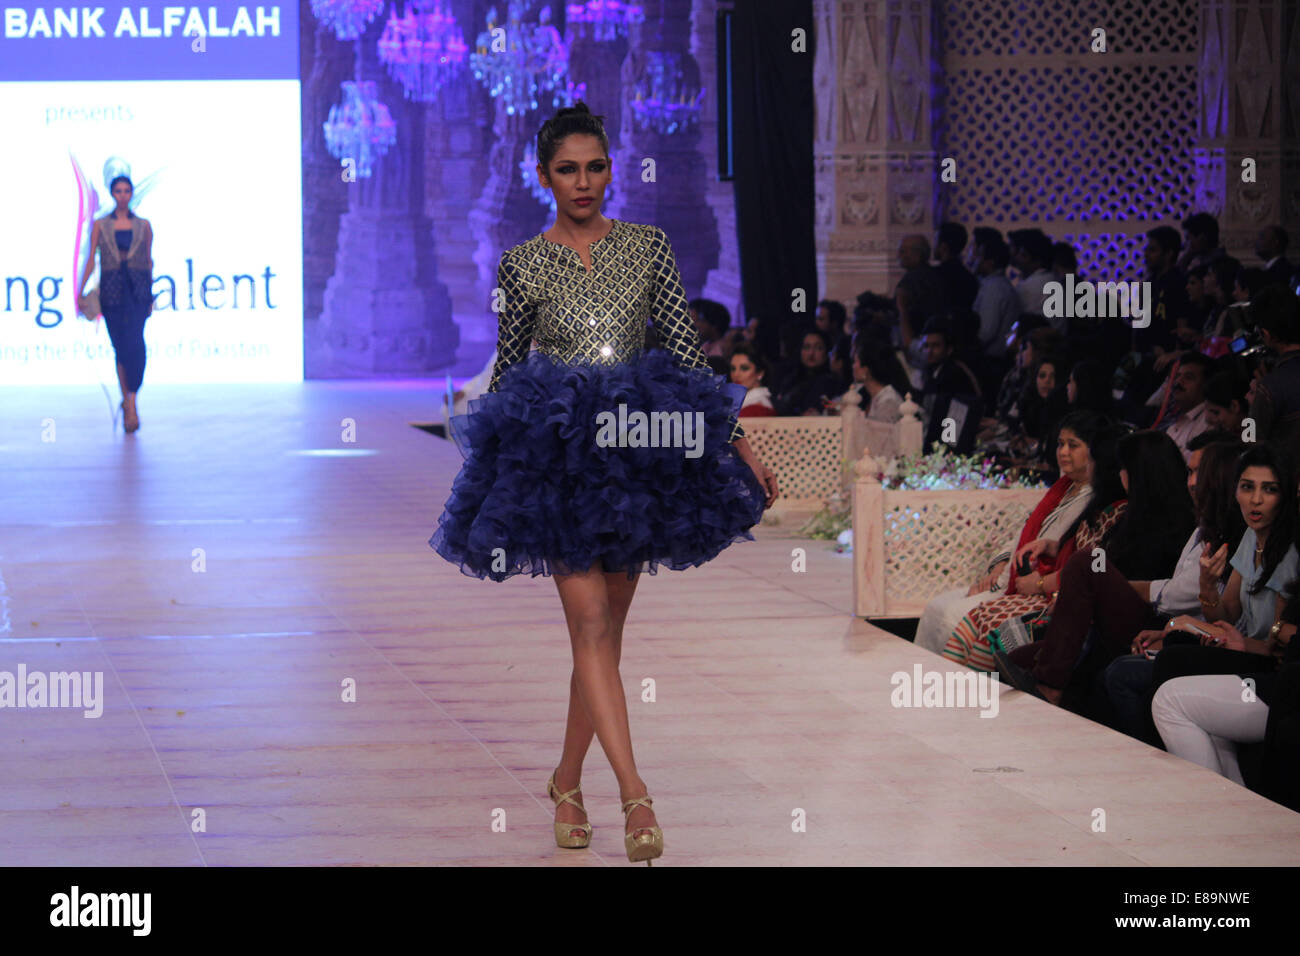 model ramp walk high resolution stock photography and images alamy https www alamy com stock photo lahore pakistan 1st october 2014 models walk on a ramp to present 73973466 html